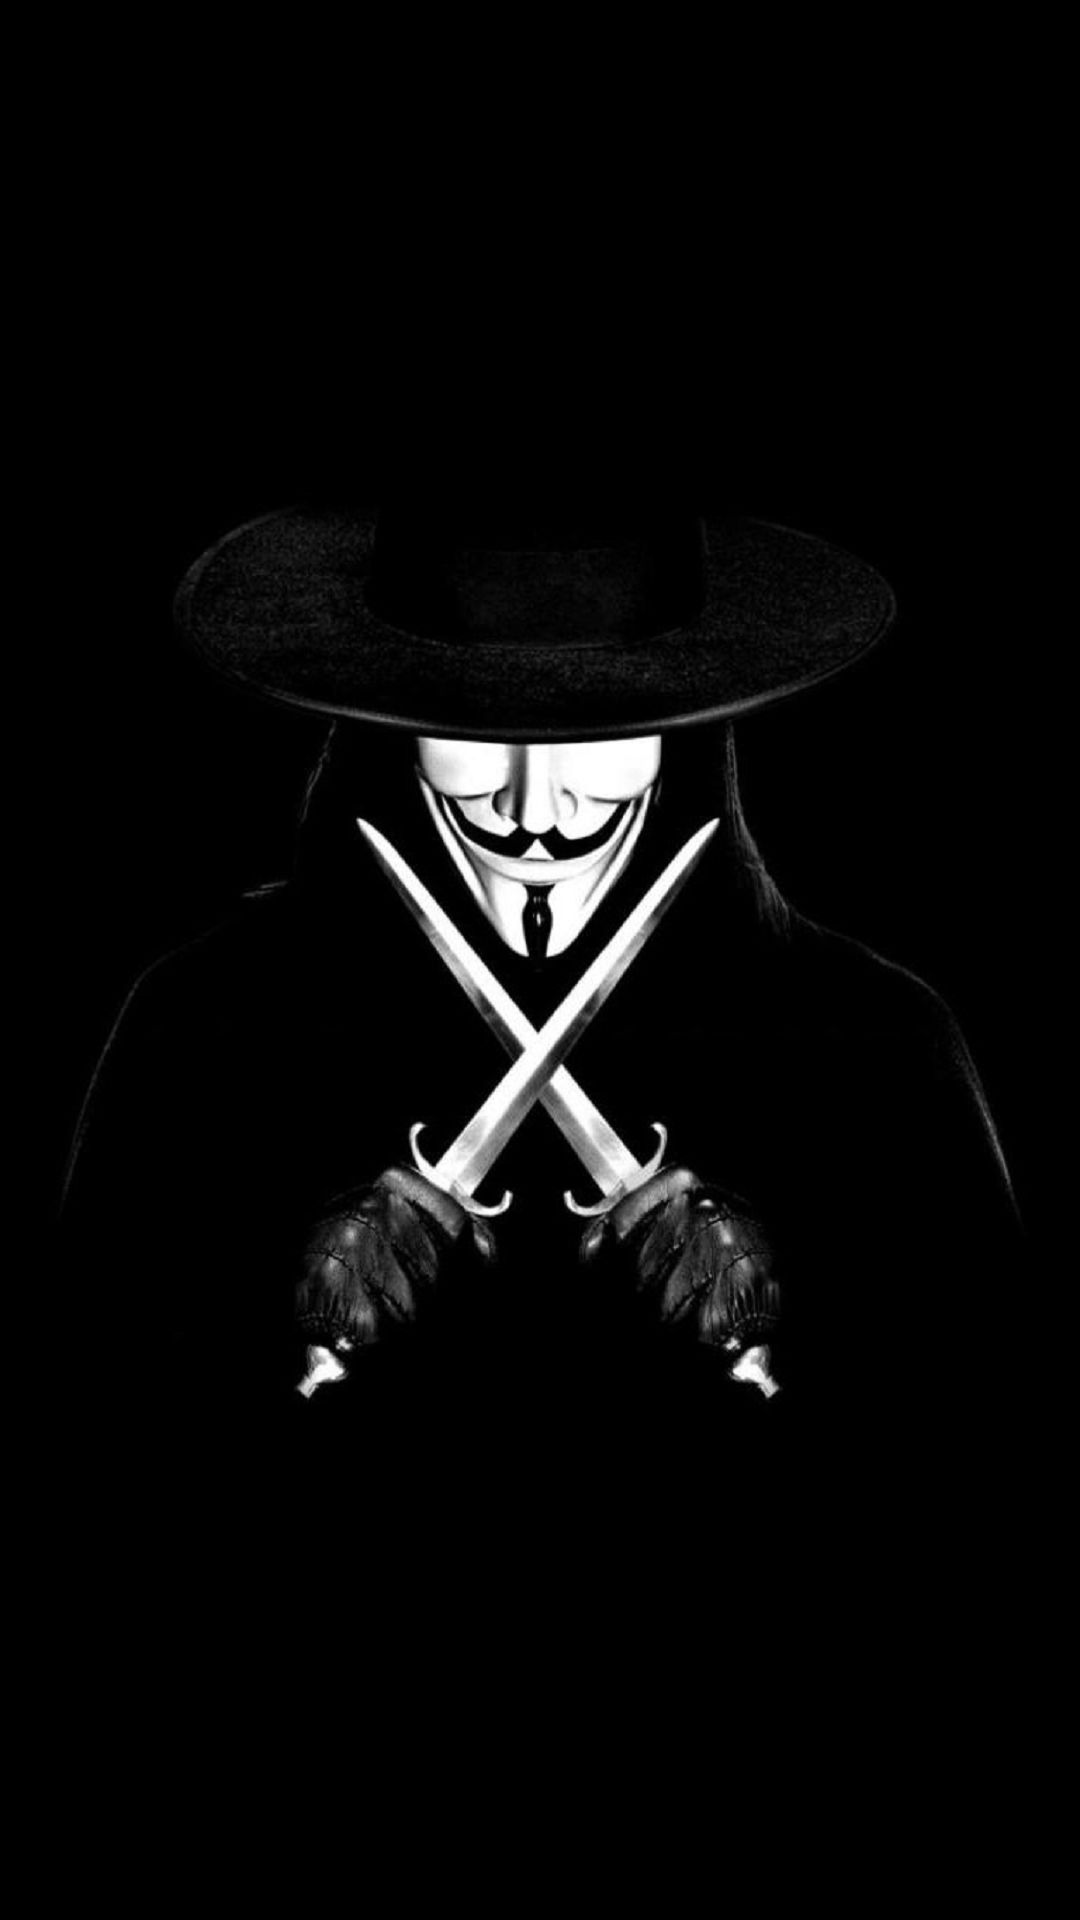 v for vendetta iphone 6 / 6 plus and iphone 5/4 wallpapers